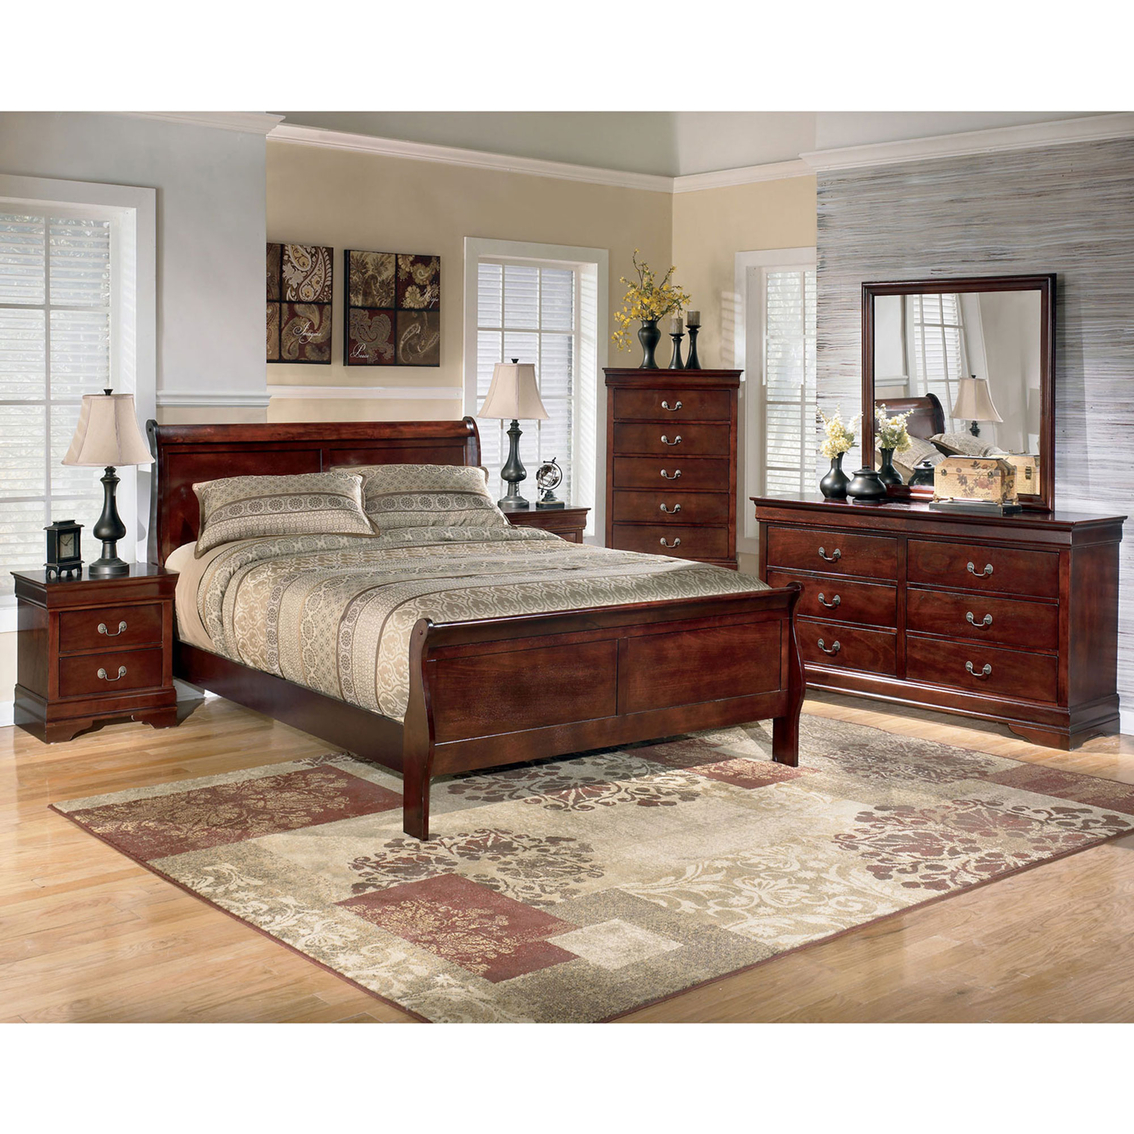 Merveilleux Signature Design By Ashley Alisdair 5 Pc. Bedroom Set